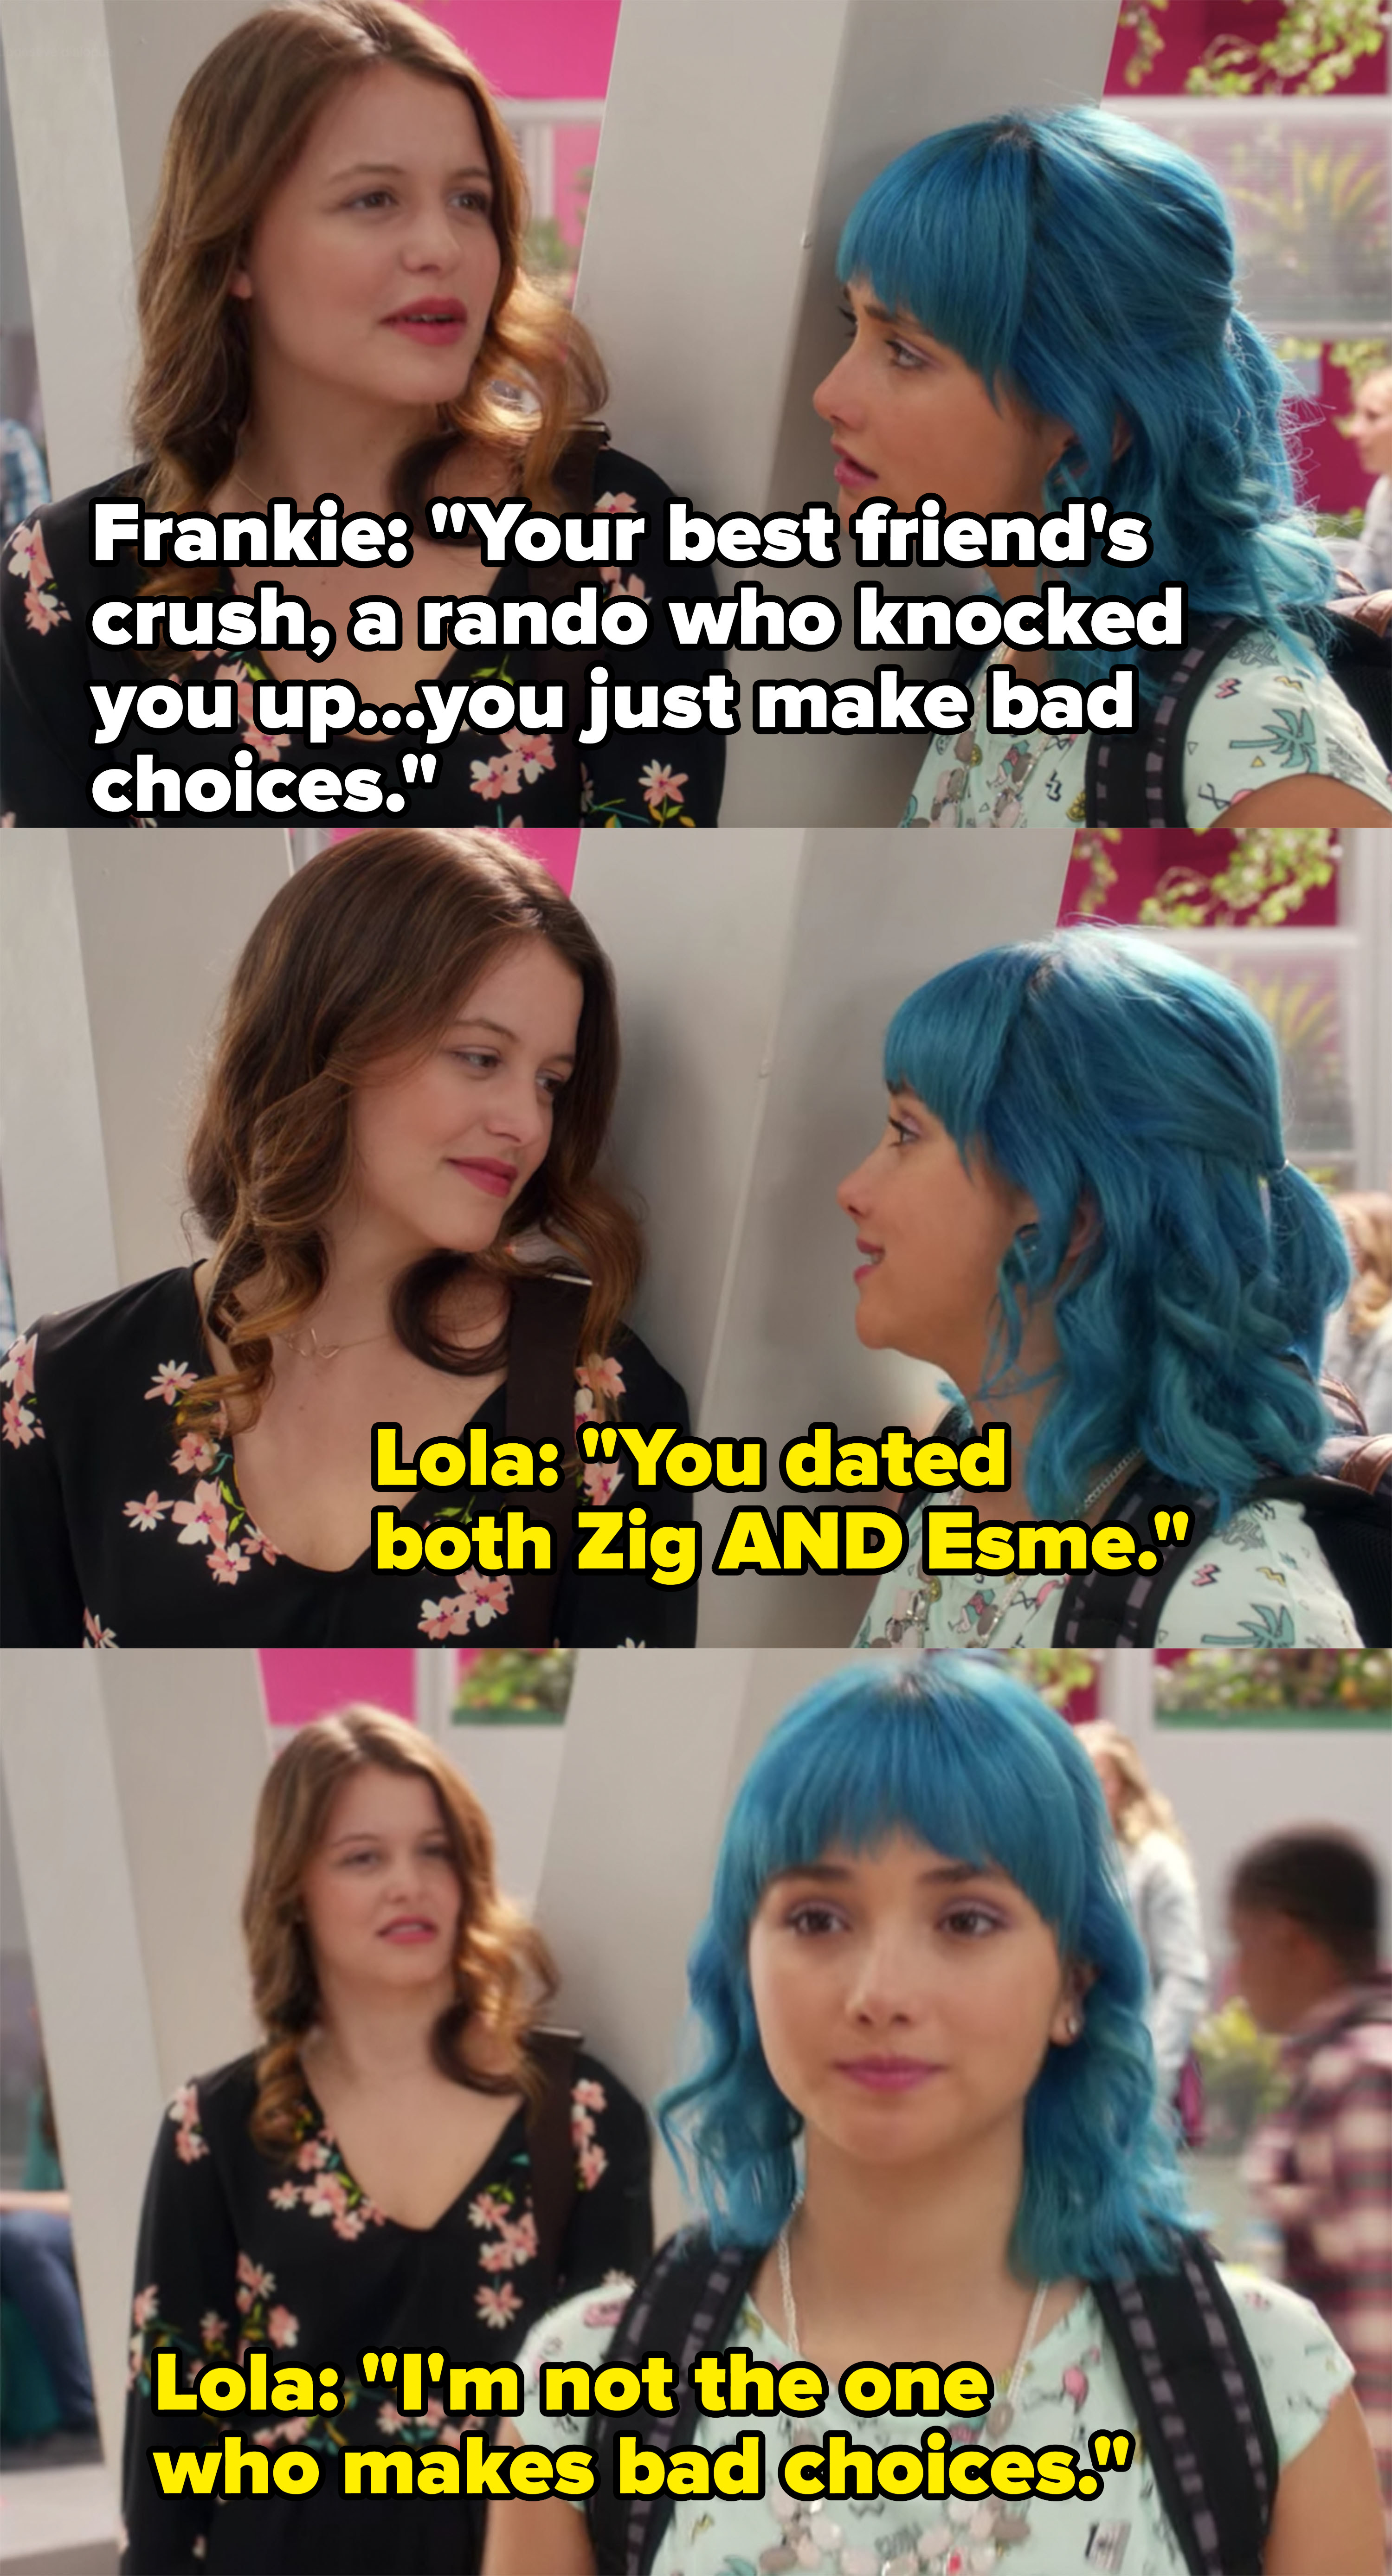 Lola points out Frankie's dating history and says she's not the one who makes bad choices